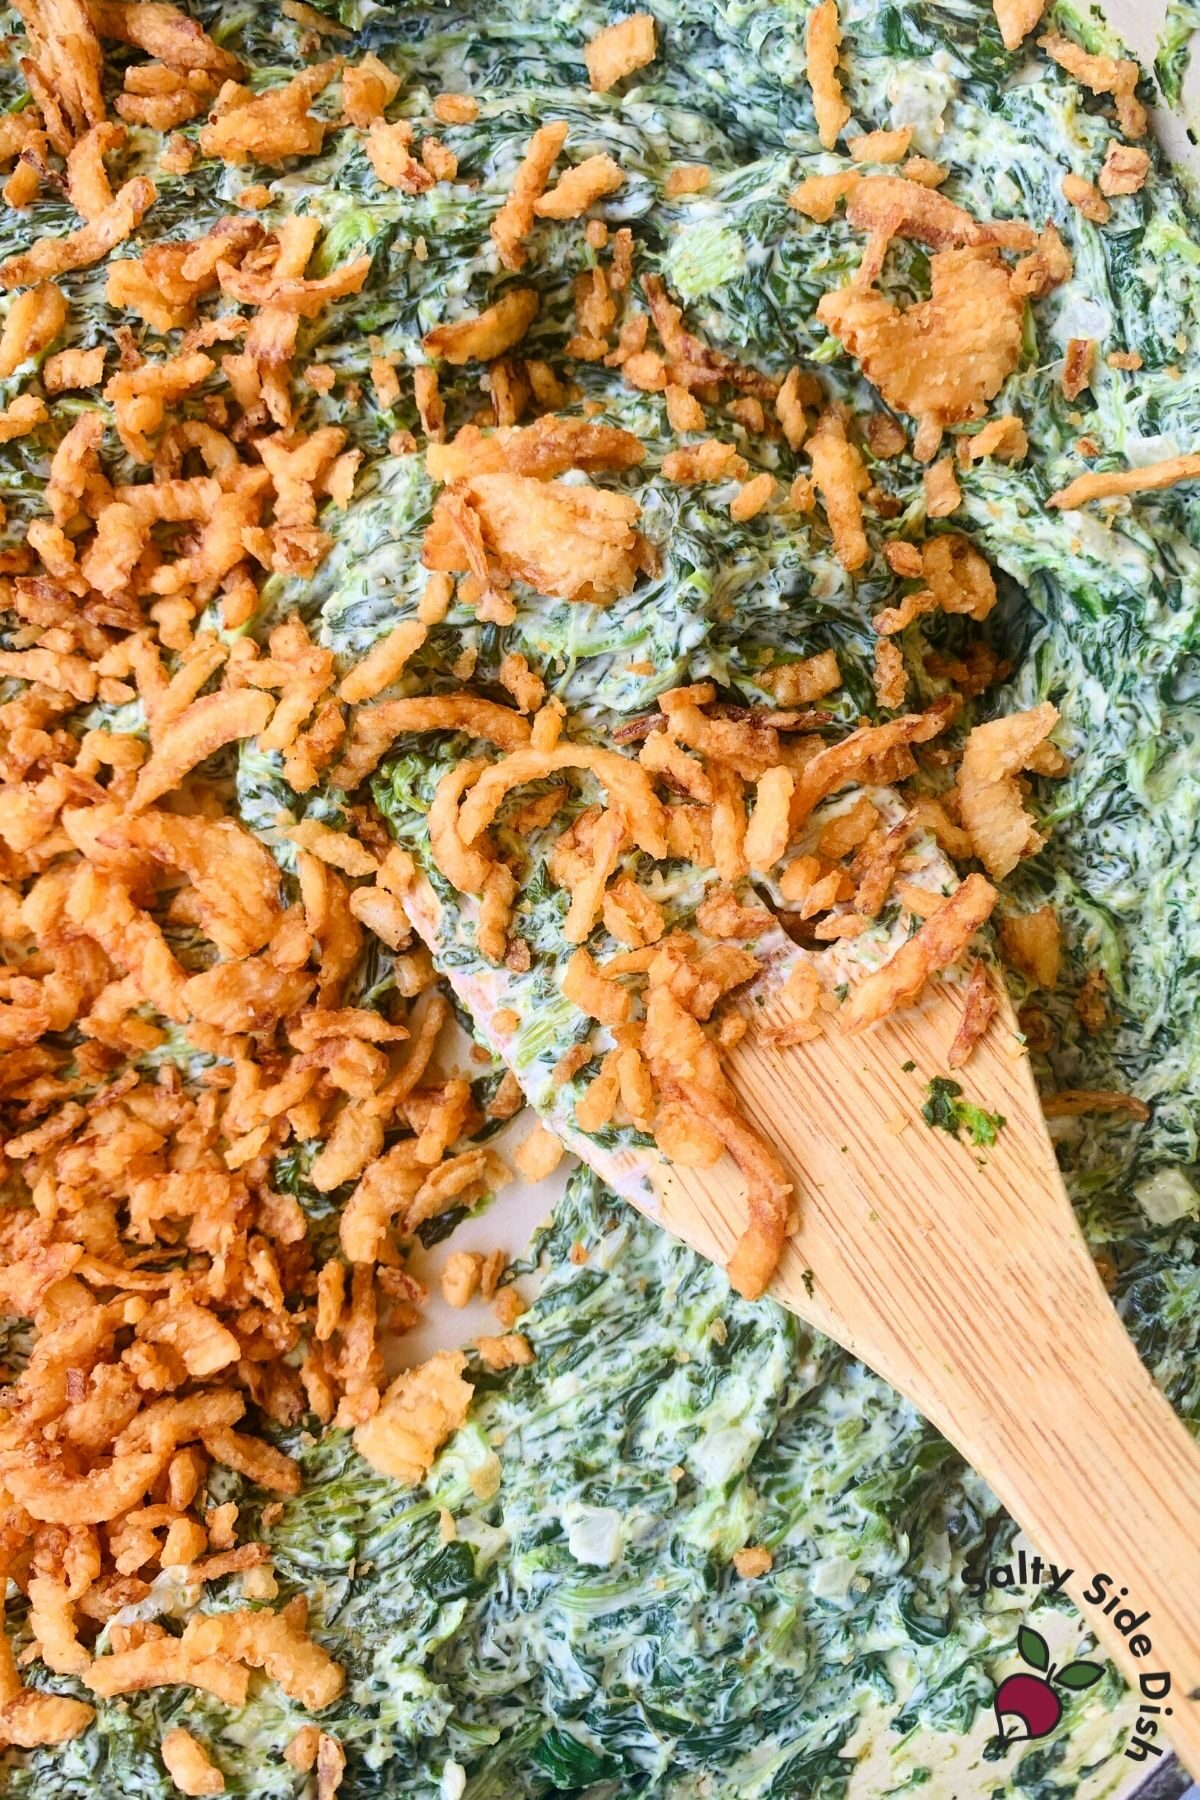 pan with wooden spoon stirring creamed spinach with a lot of French's crunchy fried onions on top